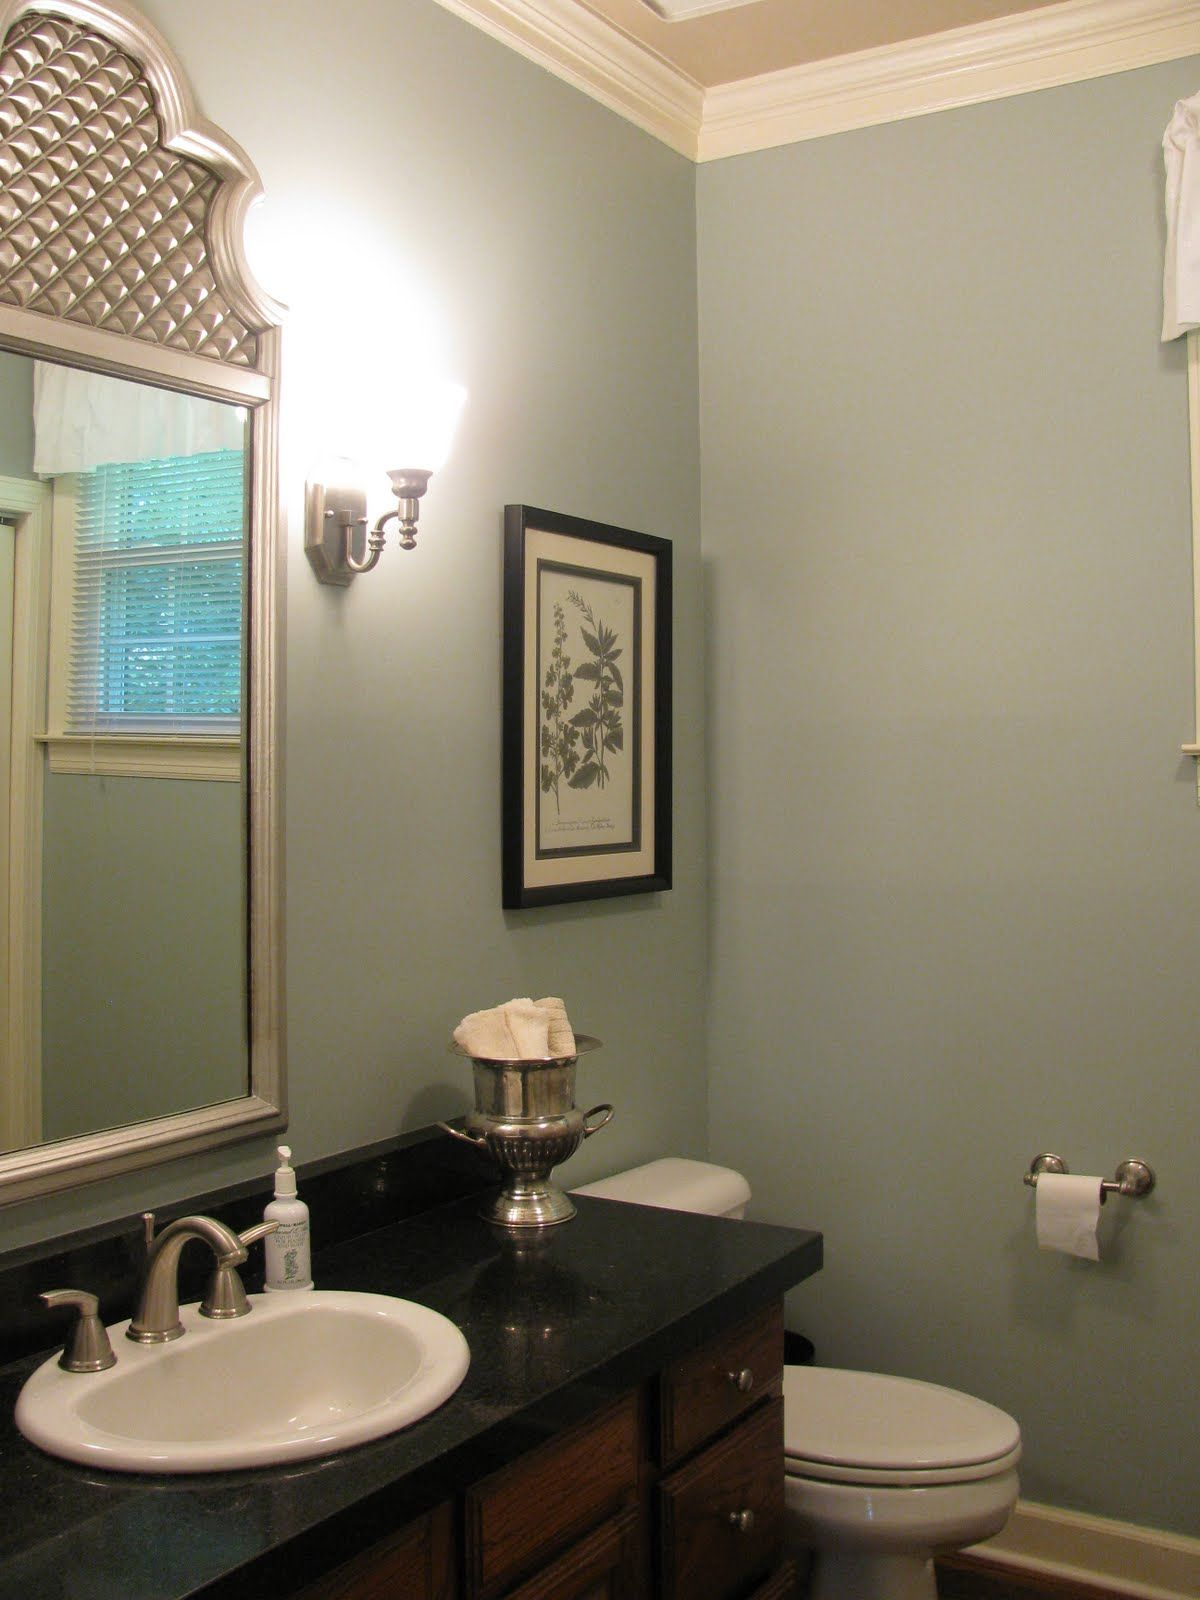 Bathroom Transformation Progress Bathroom Colors Small Apartment Bathroom Painting Bathroom